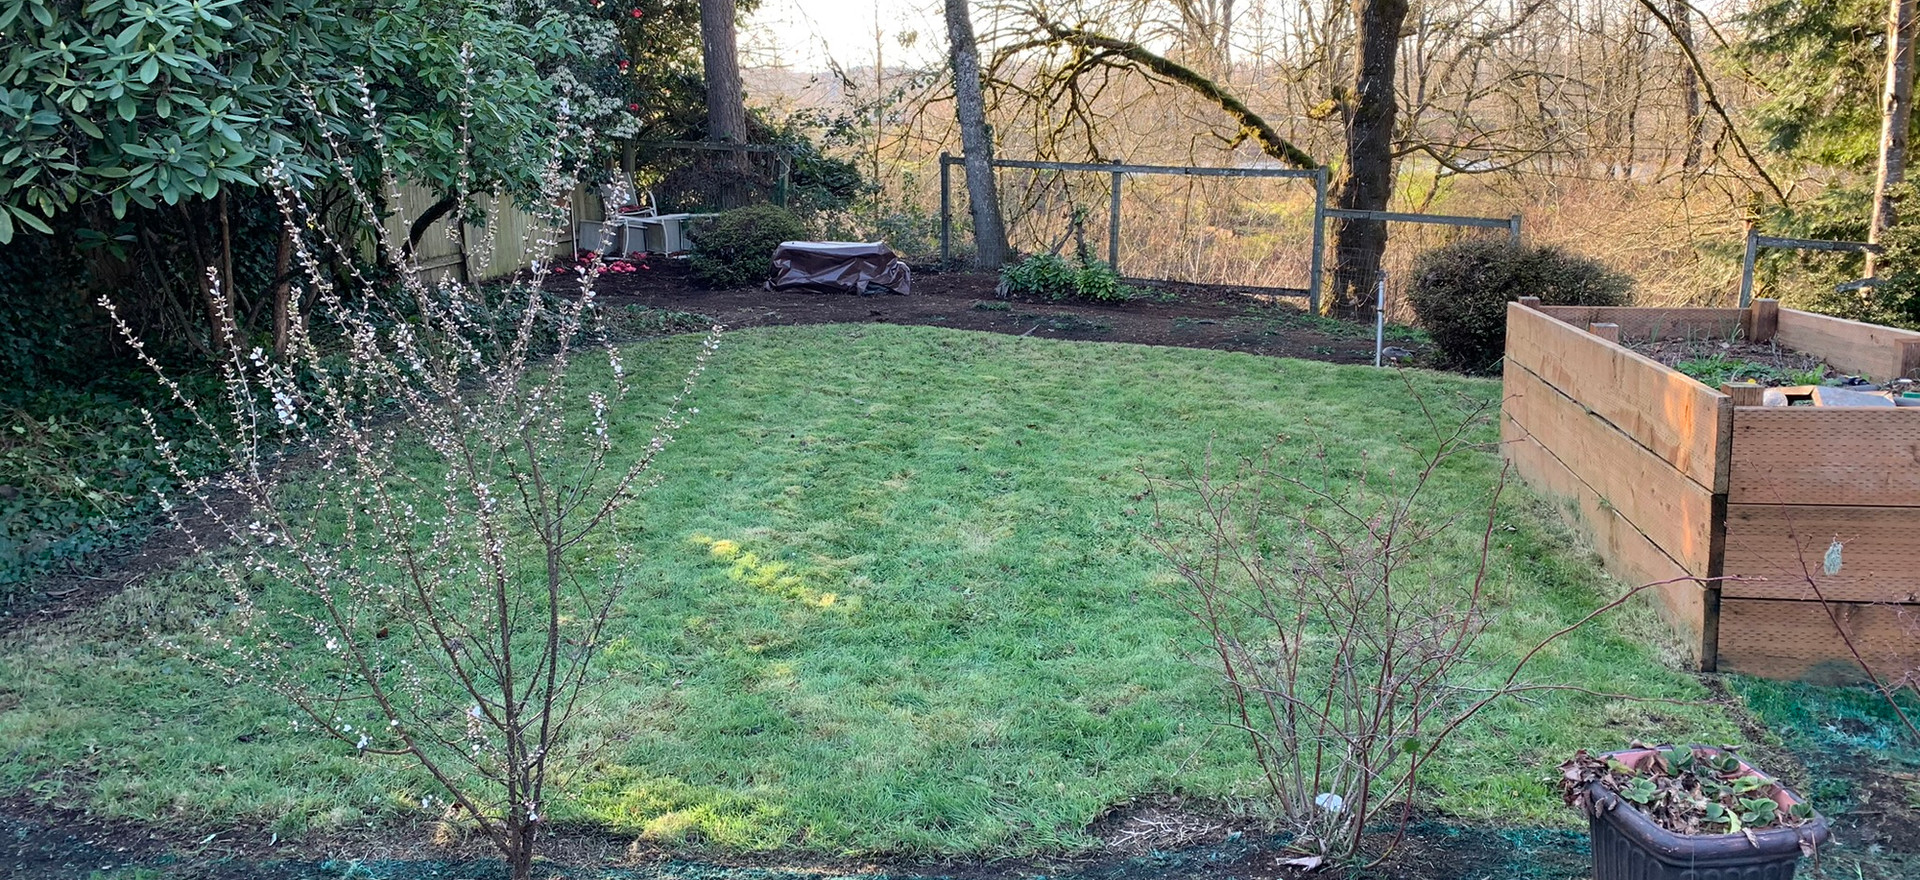 Back Yard Grass Mold and overgrowth